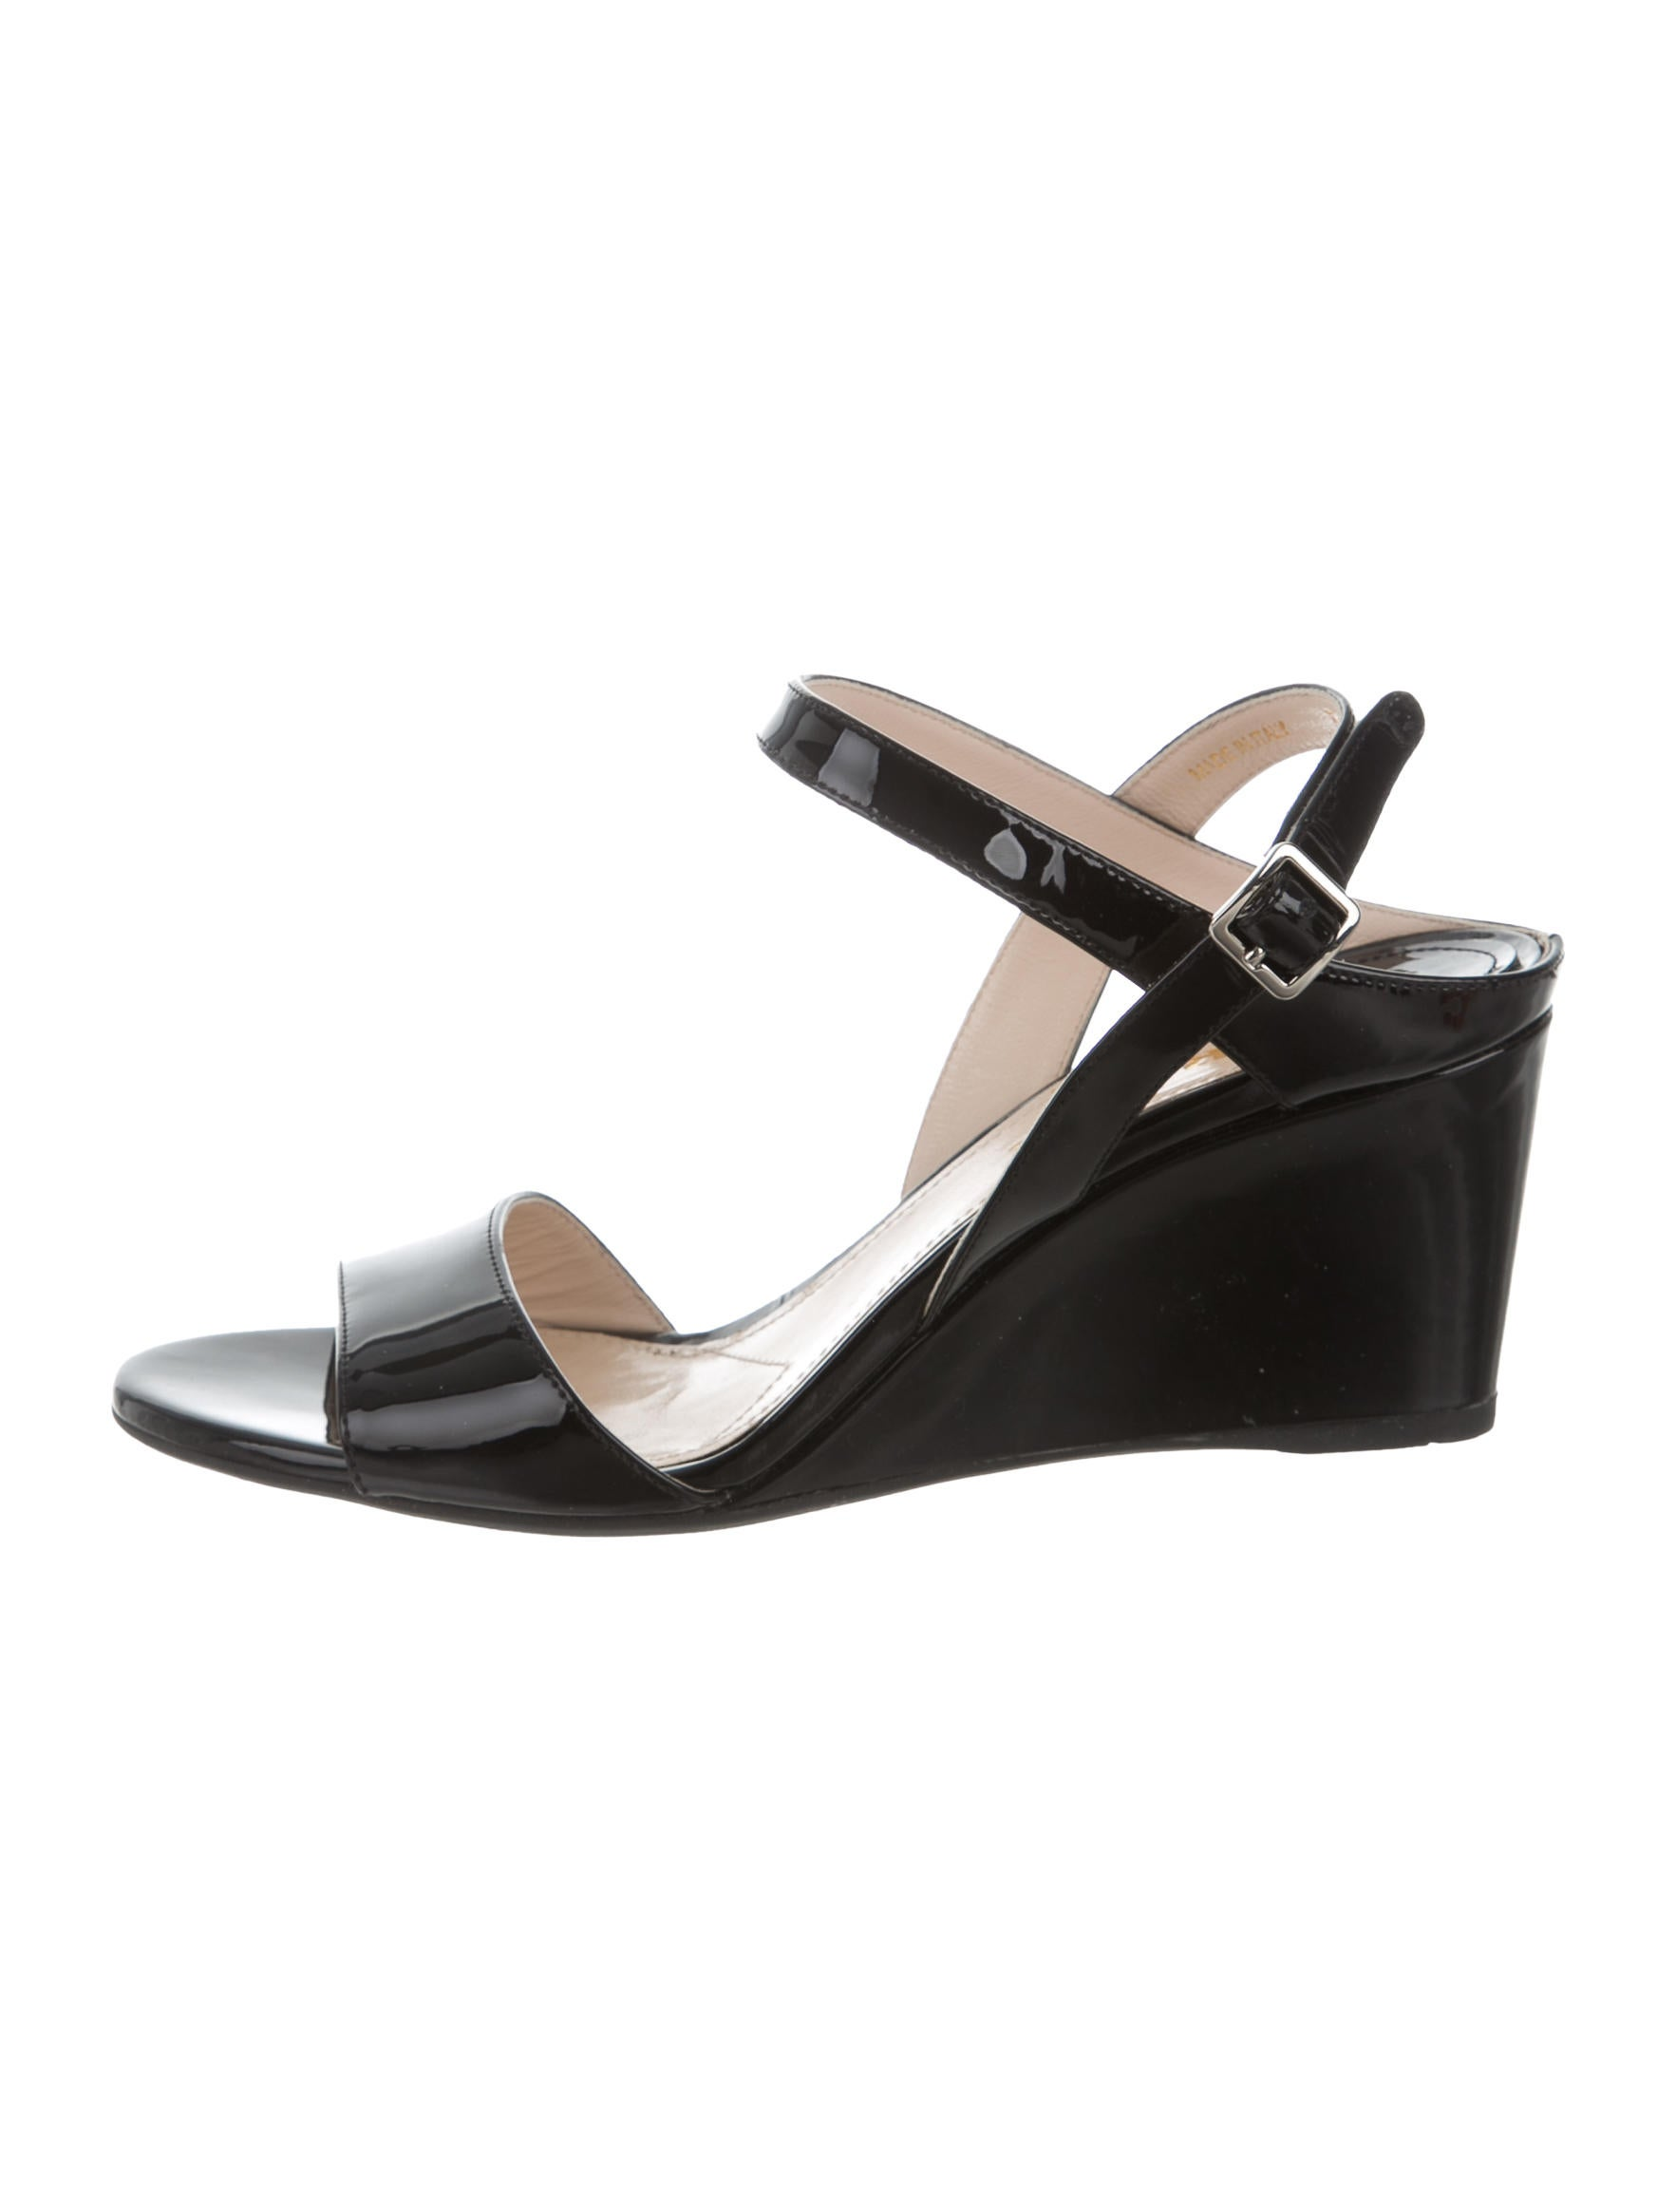 prada patent leather wedge sandals shoes pra133271